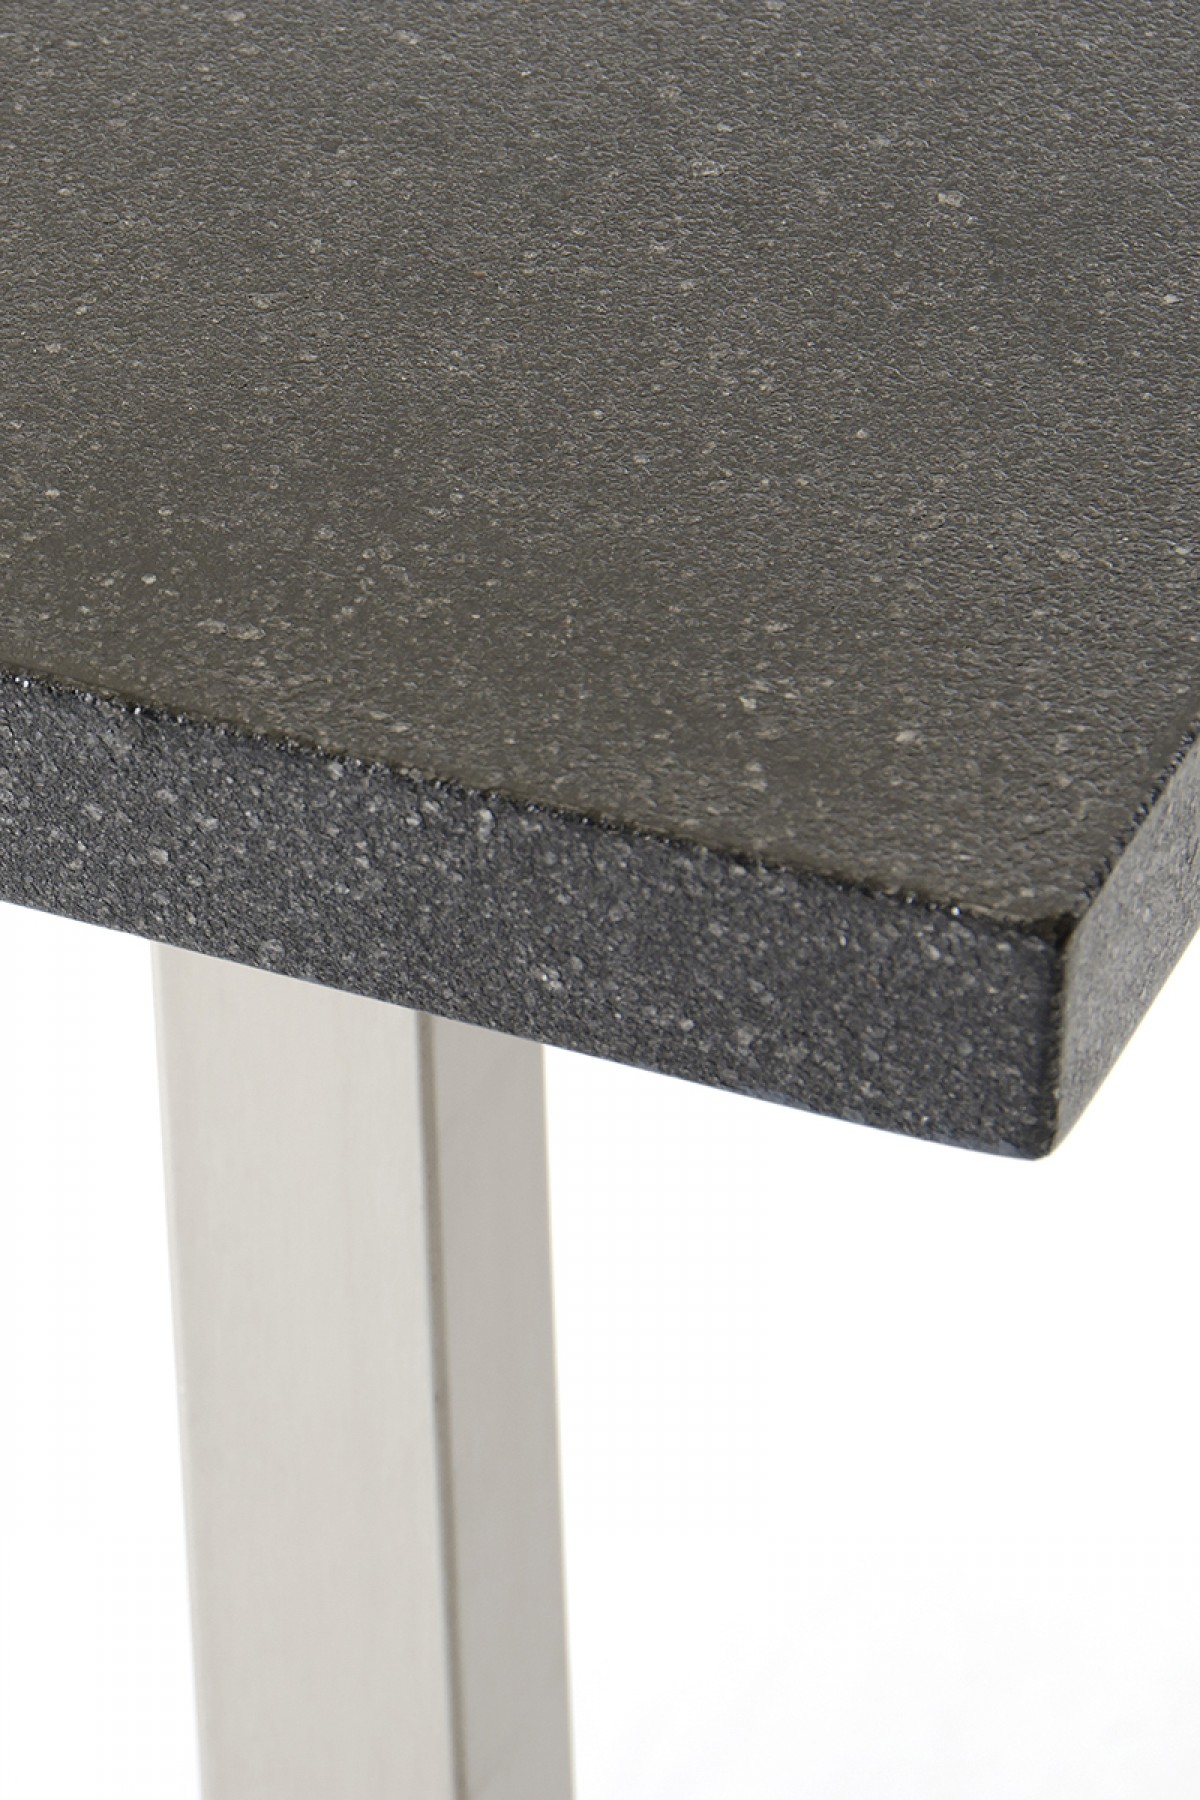 lanikai black granite dining table close up 2